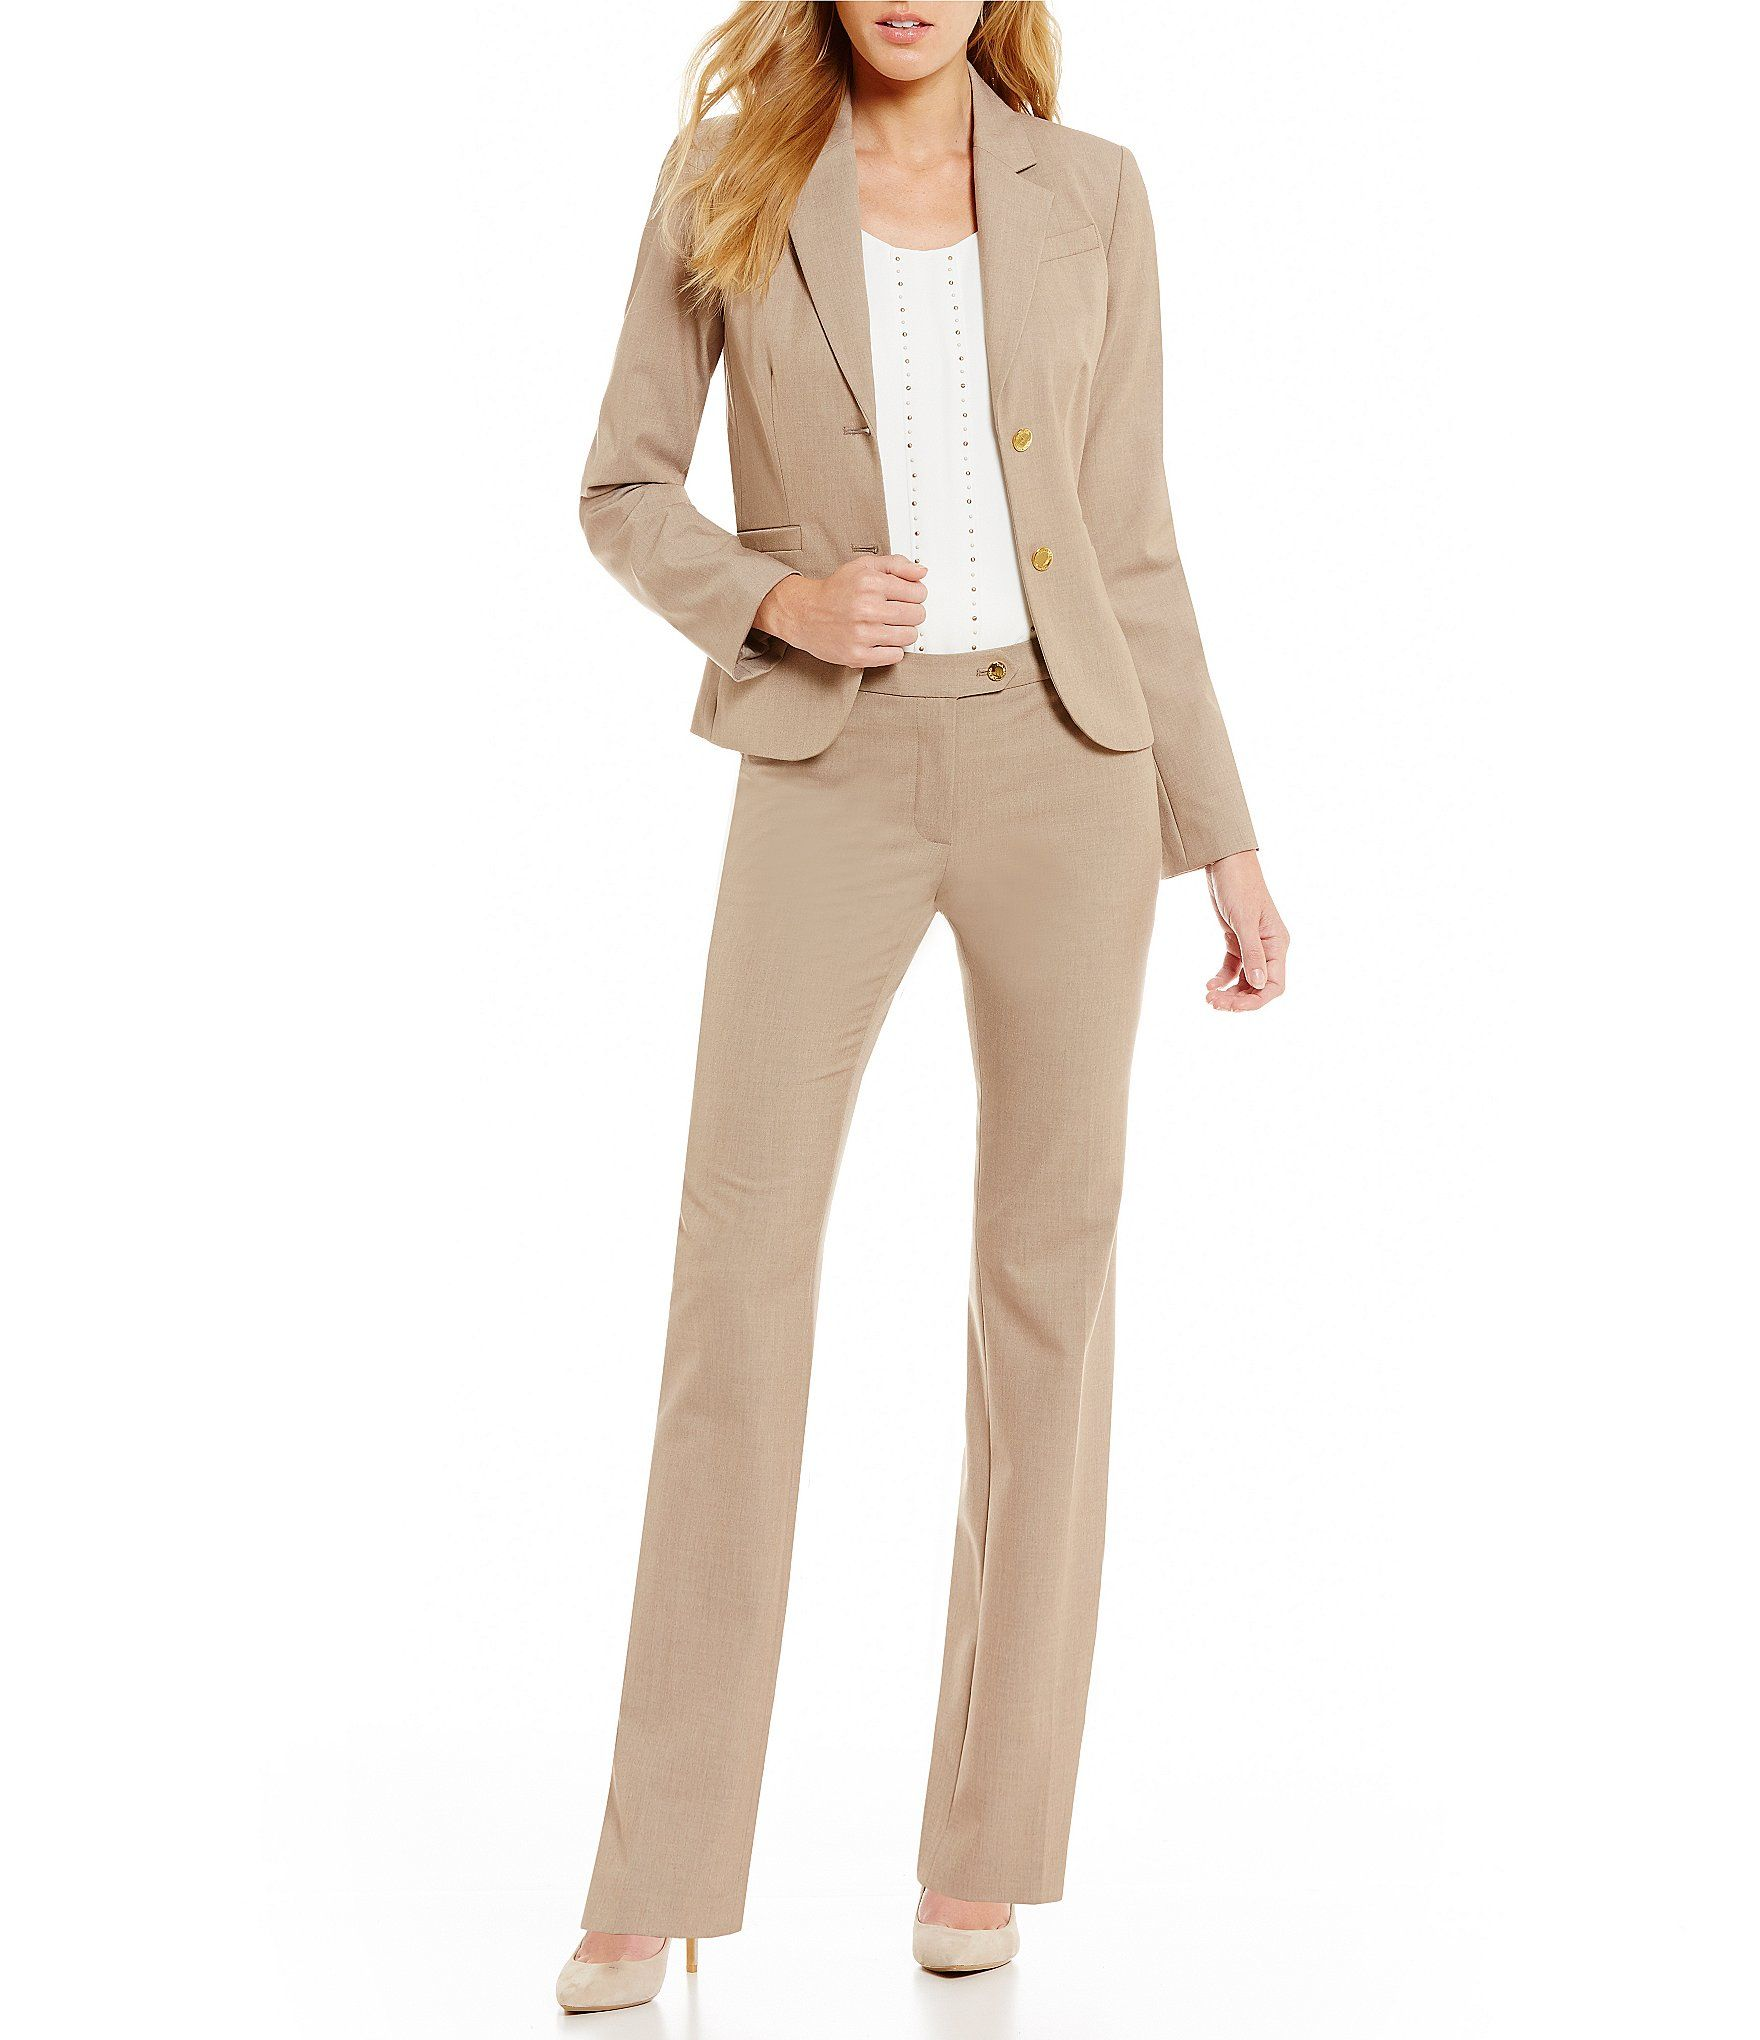 Shop for Calvin Klein Two-Button Suit Jacket and Modern Fit Straight-Leg  Pants at Dillards.com. Visit Dillards.com to find clothing e1d7296fd6d9